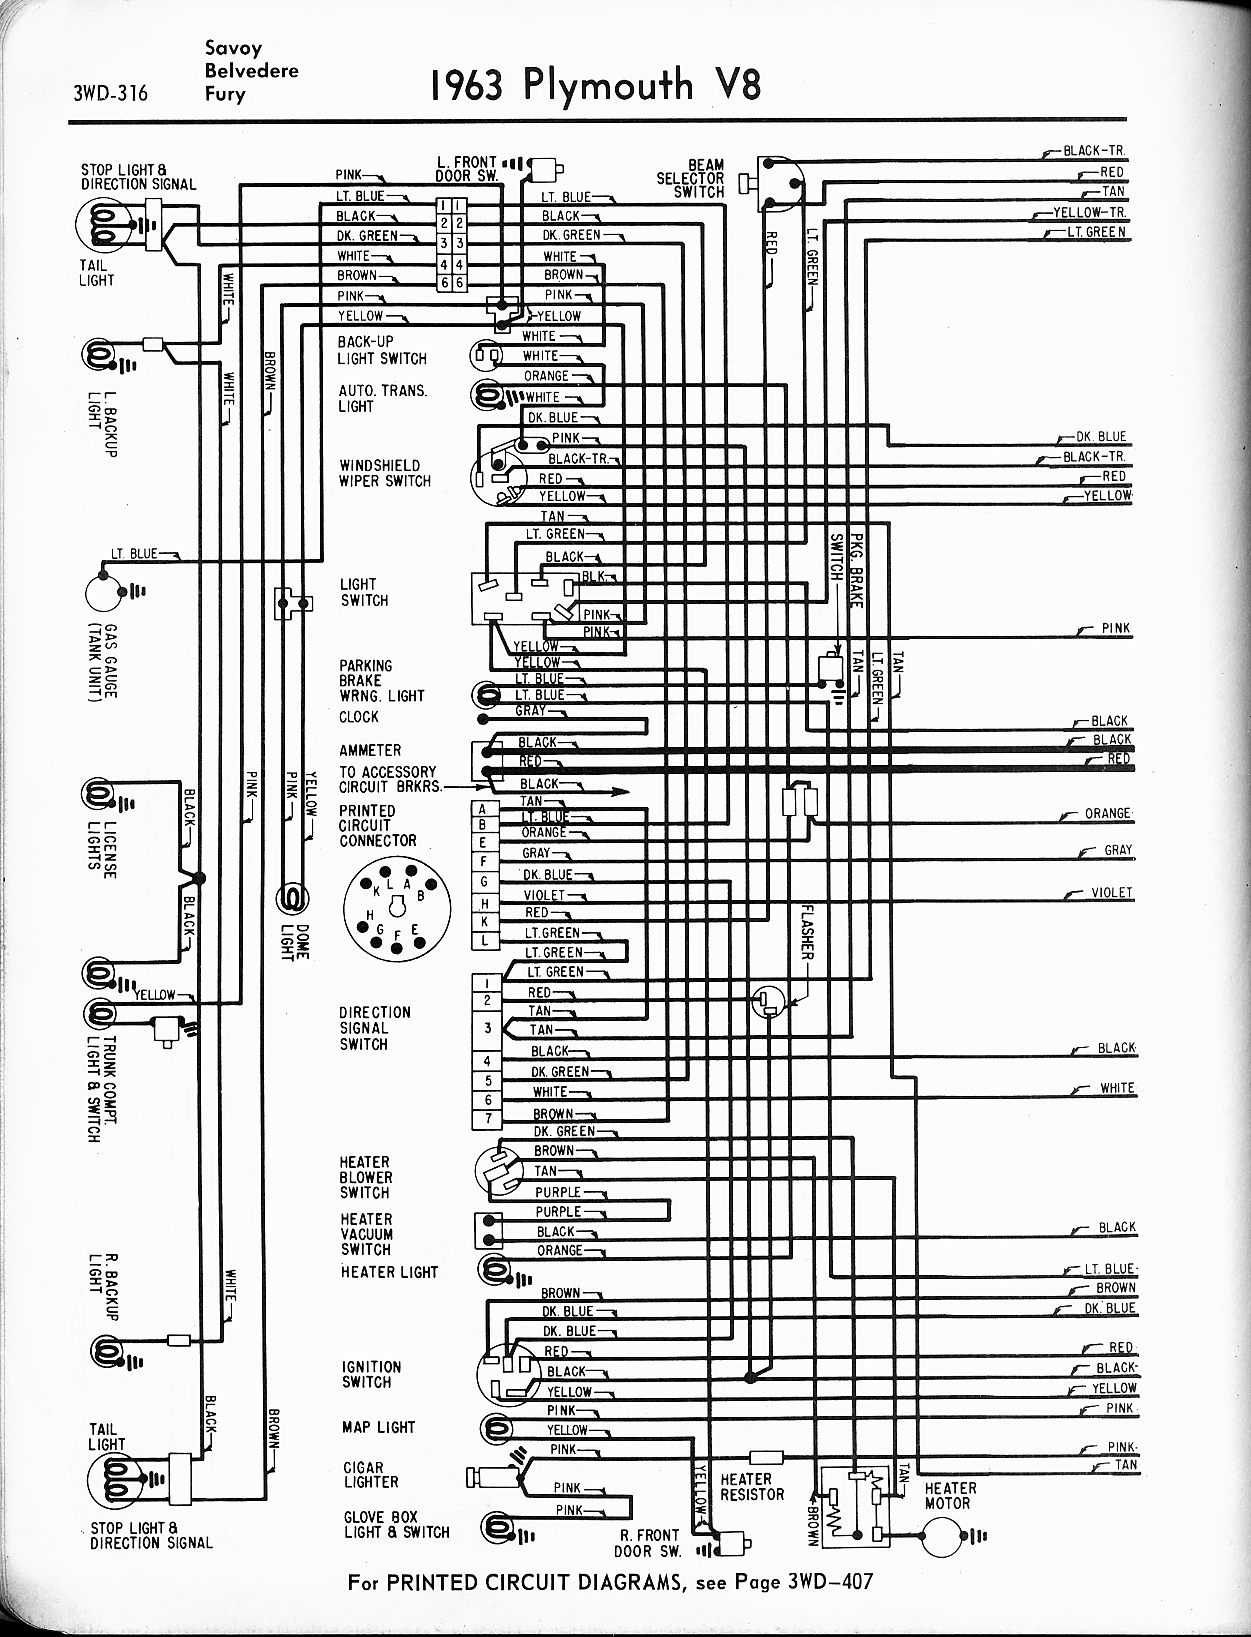 MWire5765 316 1956 1965 plymouth wiring the old car manual project Mopar Ignition Switch Wiring Diagram at eliteediting.co